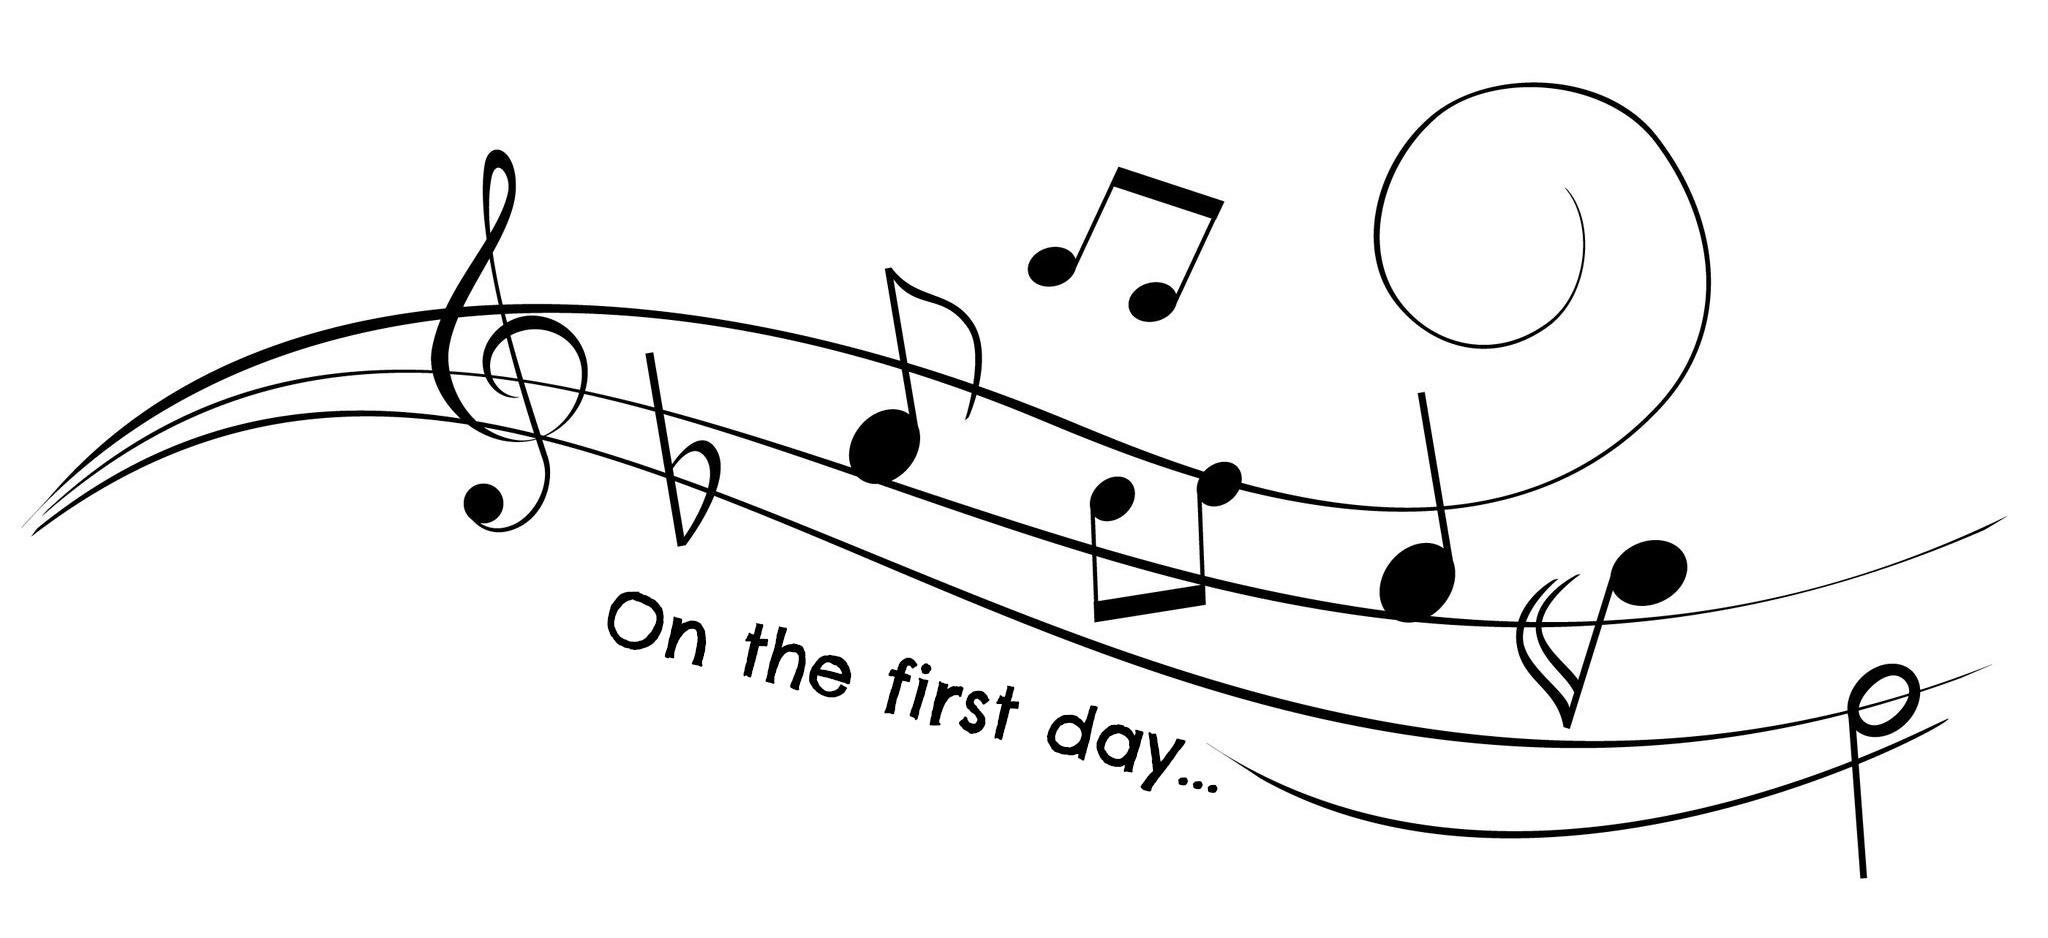 On The First Day Music Notes